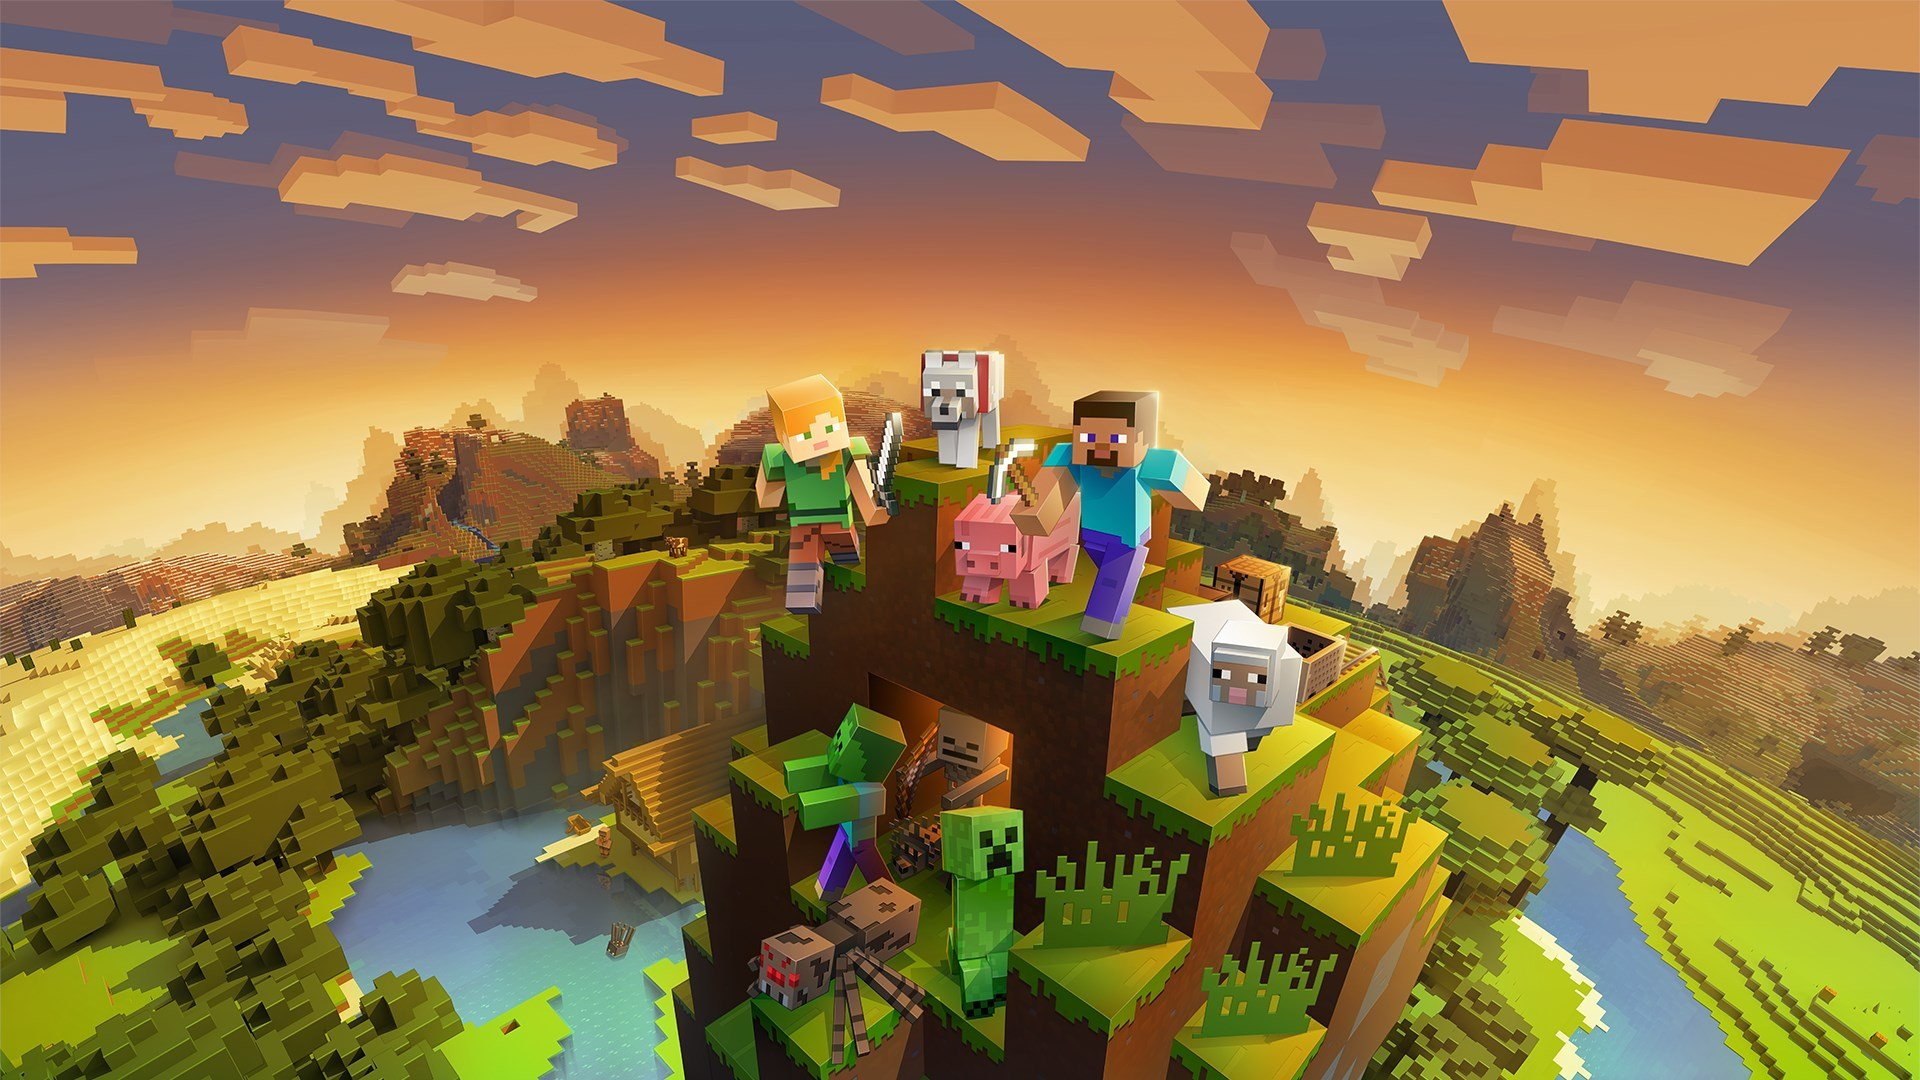 Minecraft is one of the most popular indie games of all time and universally loved by kids of all ages.